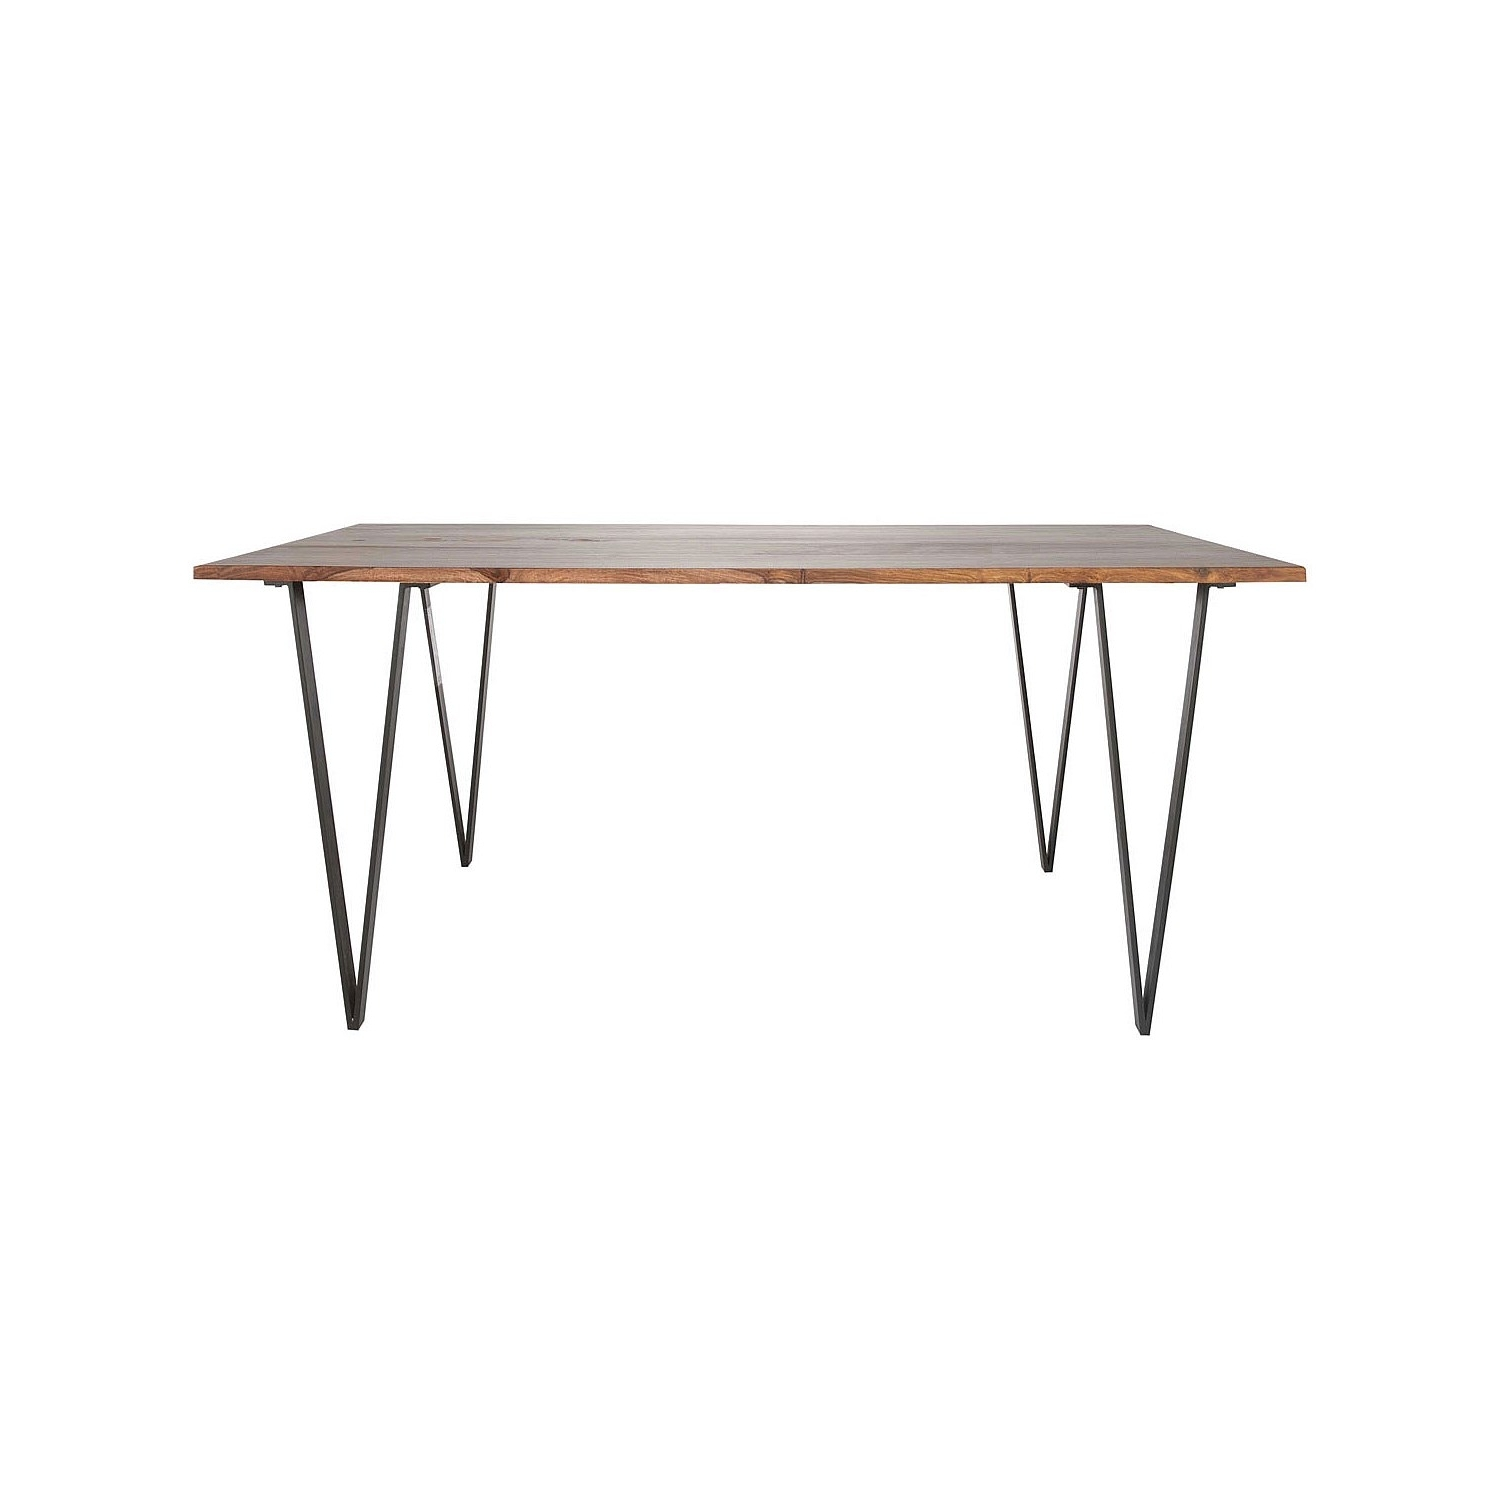 Most Recent Dining Tables – Wyatt Dining Table 175X90Cm Within Wyatt Dining Tables (View 7 of 25)